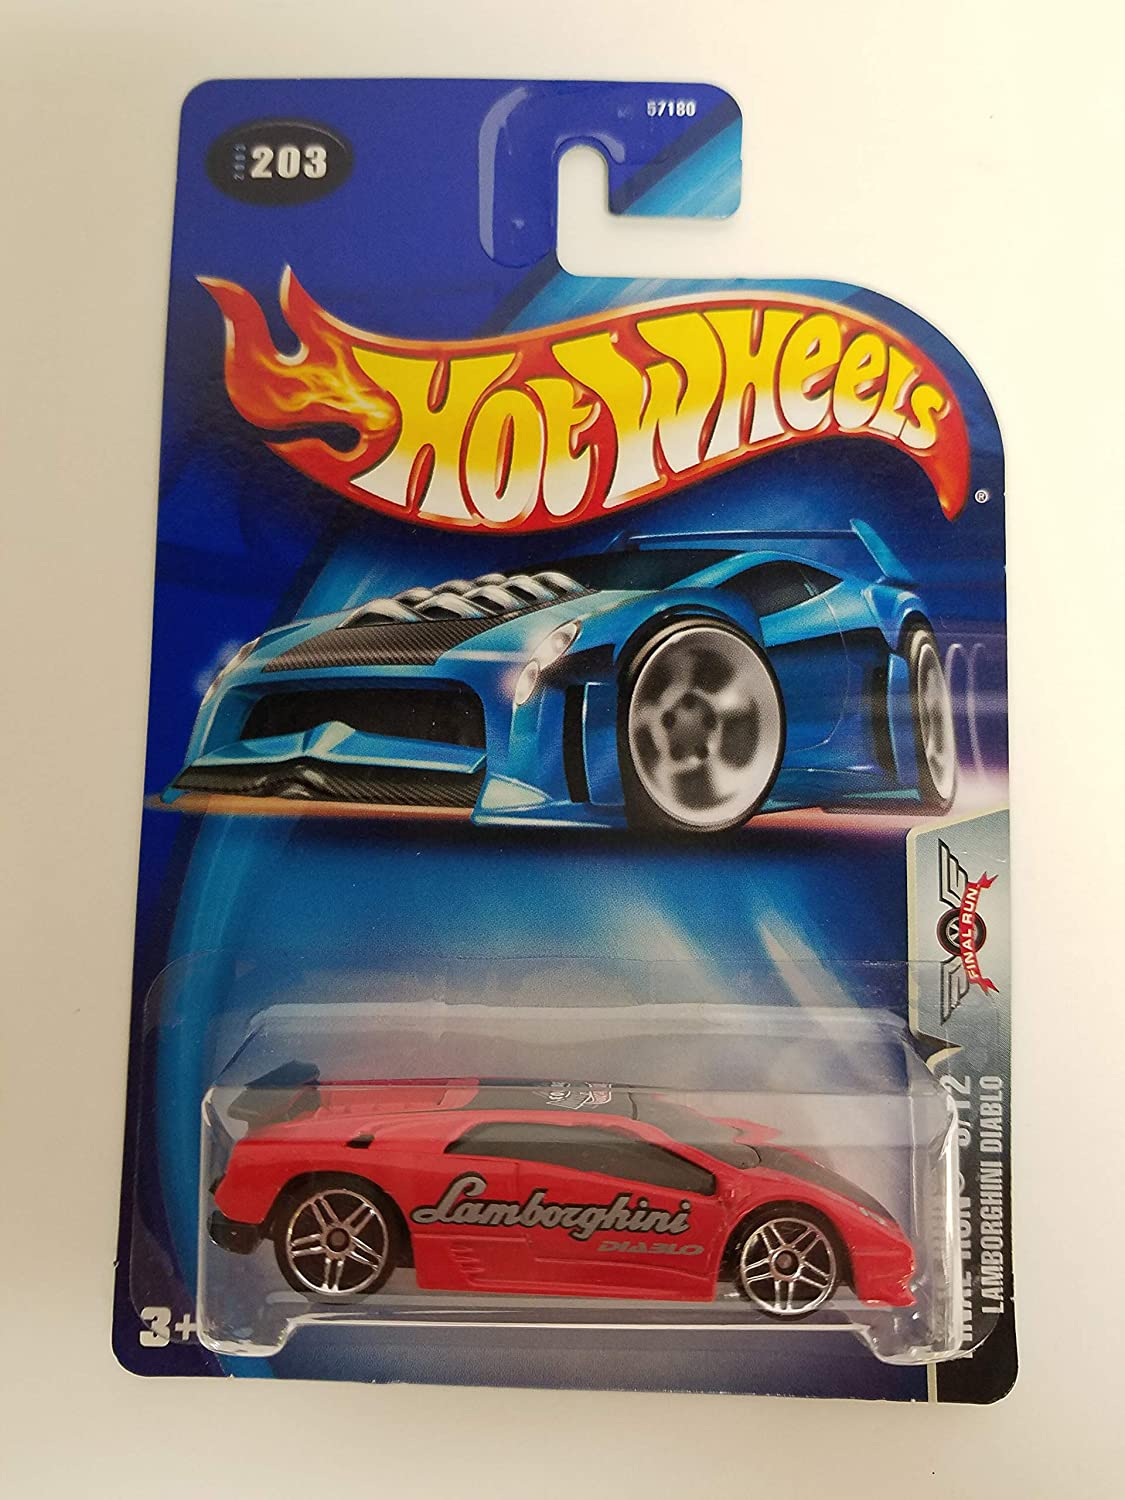 Lamborghini Diablo Final Run 9/12 2003 Hot Wheels diecast car No. 203